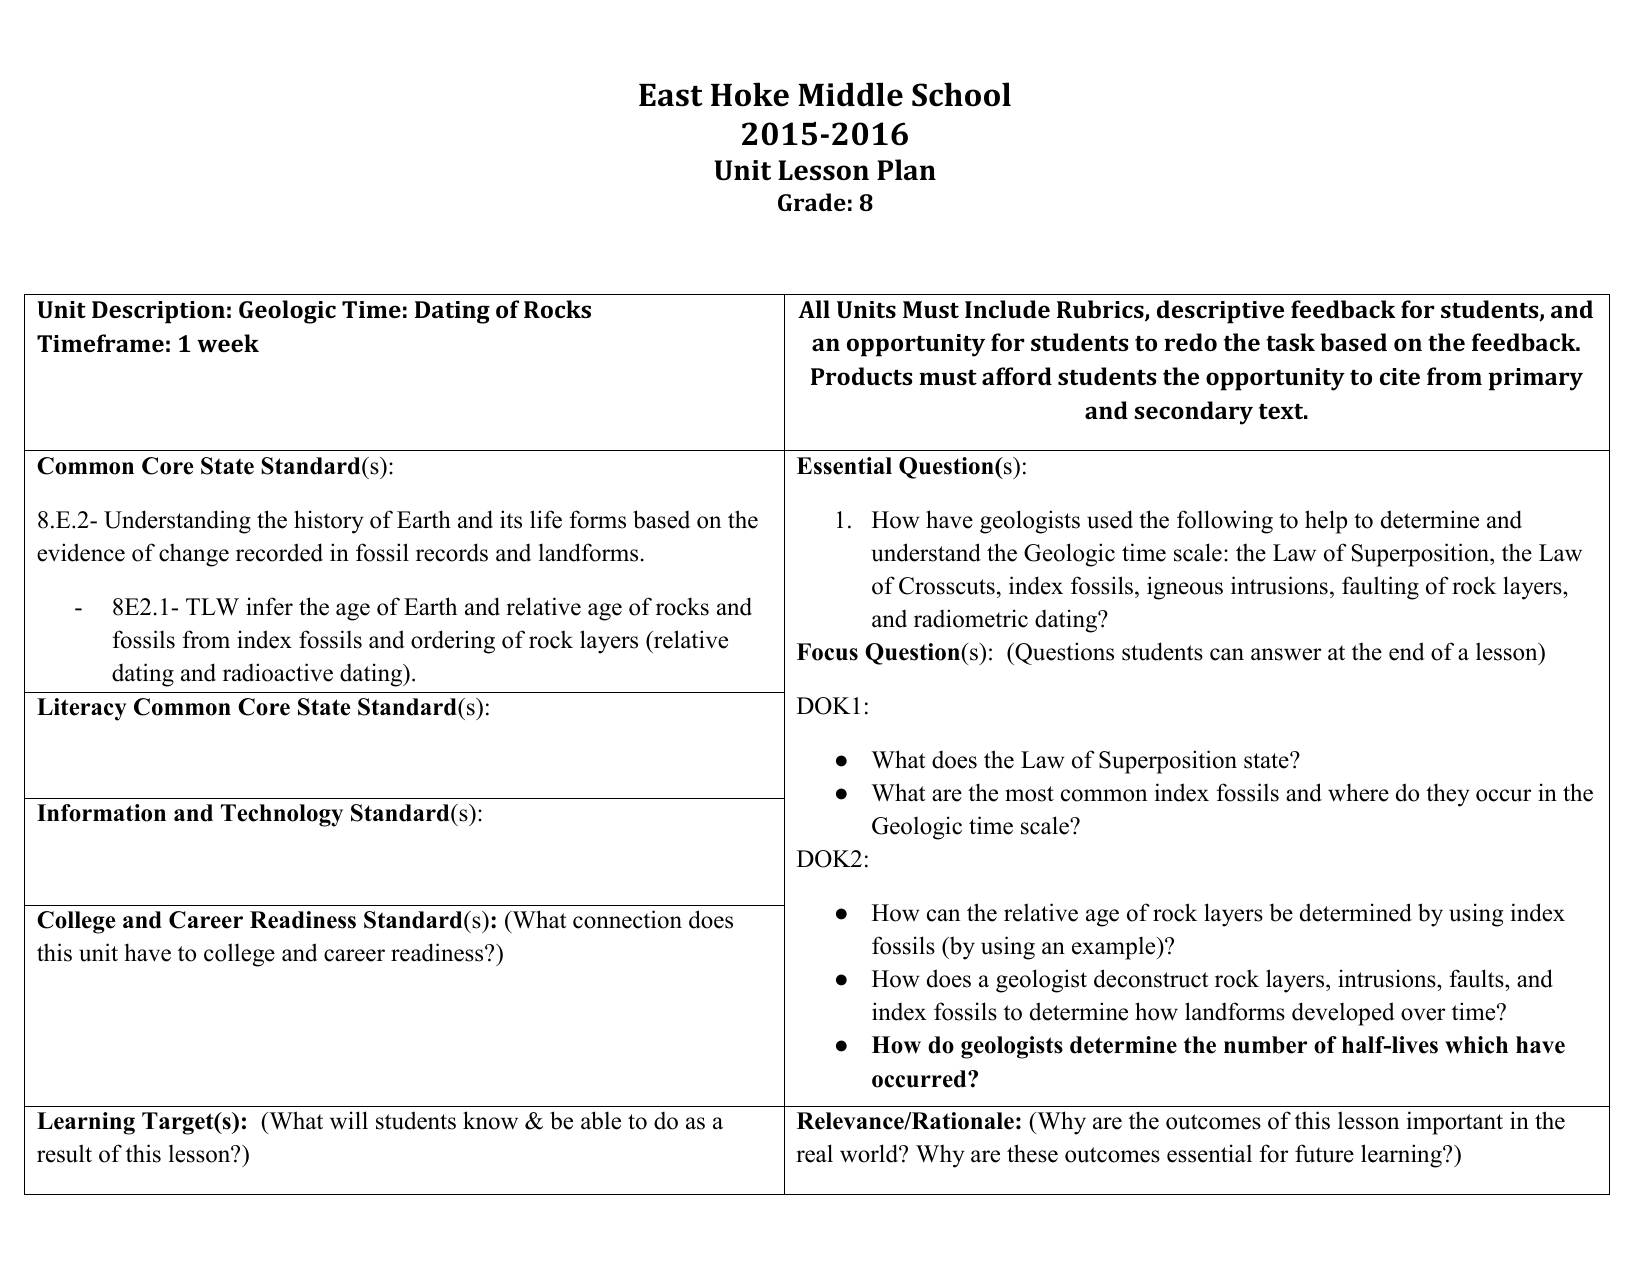 East Hoke Middle School Unit Lesson Plan